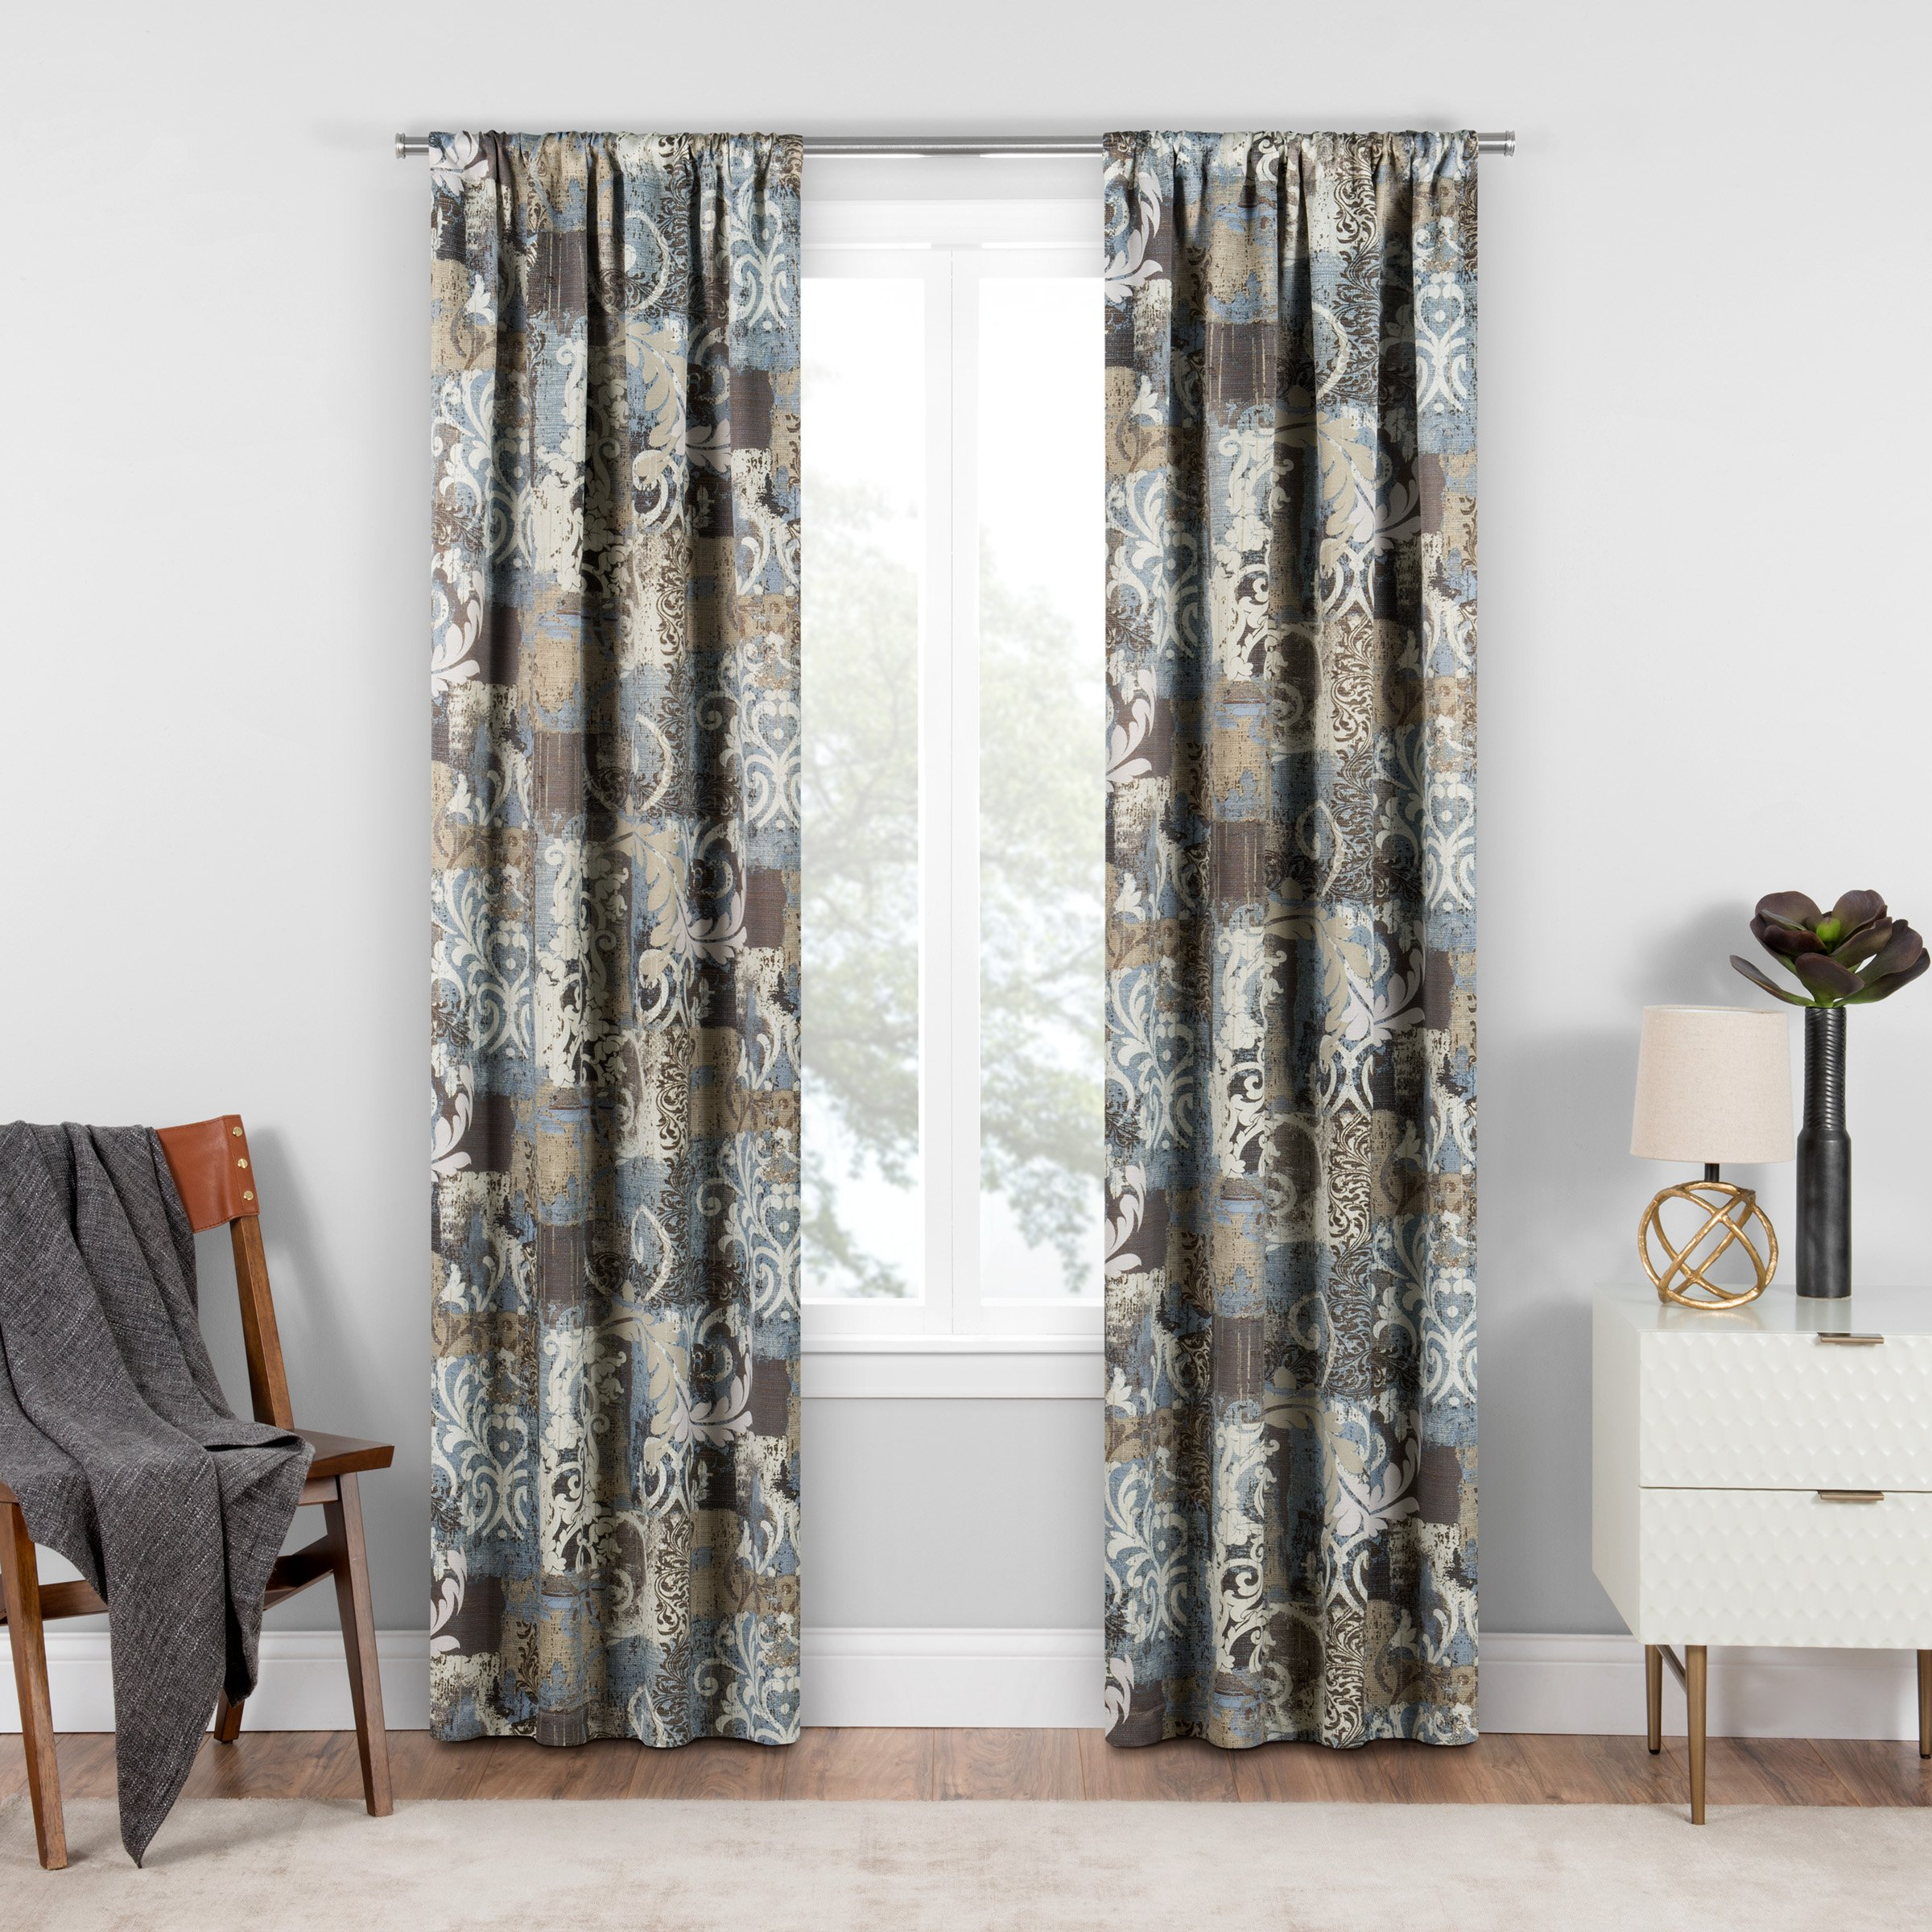 Eclipse Chiswick Room Darkening Single Window Curtain, 37x84, Spa